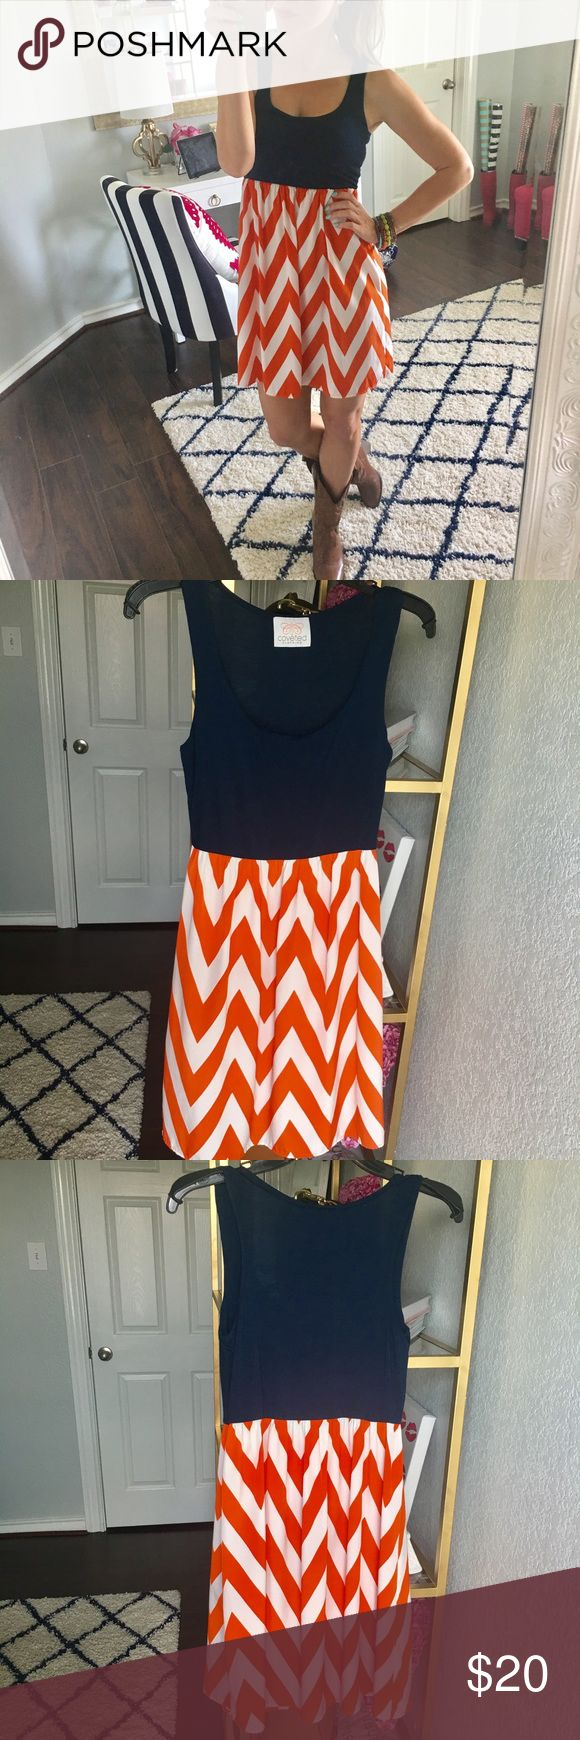 Navy and Orange Chevron Dress This eye-catching dress is very comfortable! Navy contrast is made of 94% Viscose and 6% Spandex and bottom is 100% Polyester // Worn once to a football game // No trades, please 💋 Coveted Clothing  Dresses